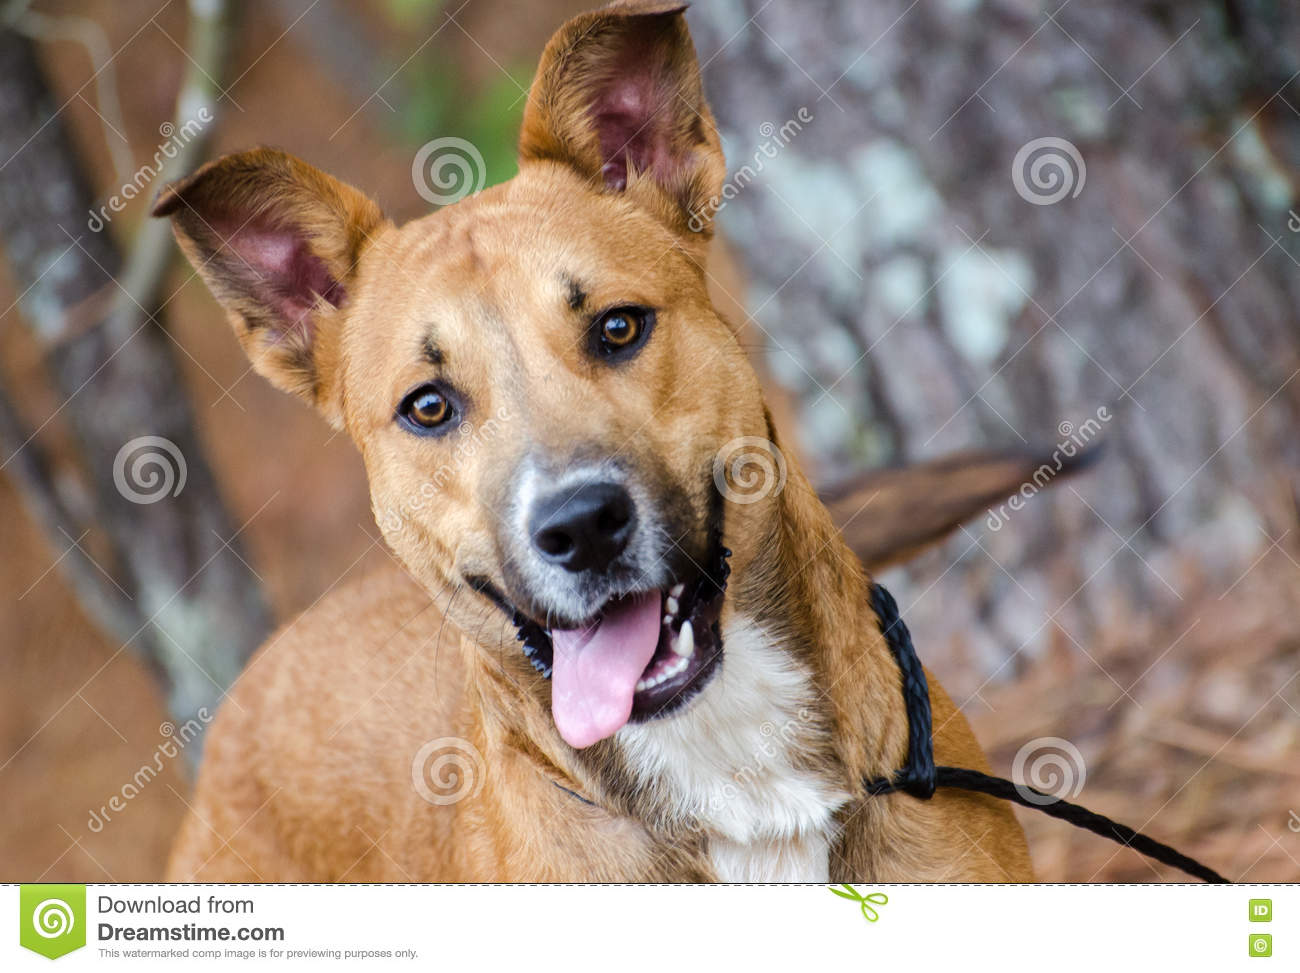 Happy Dog Tail Wagging Stock Photos - 245 Images - photo#27